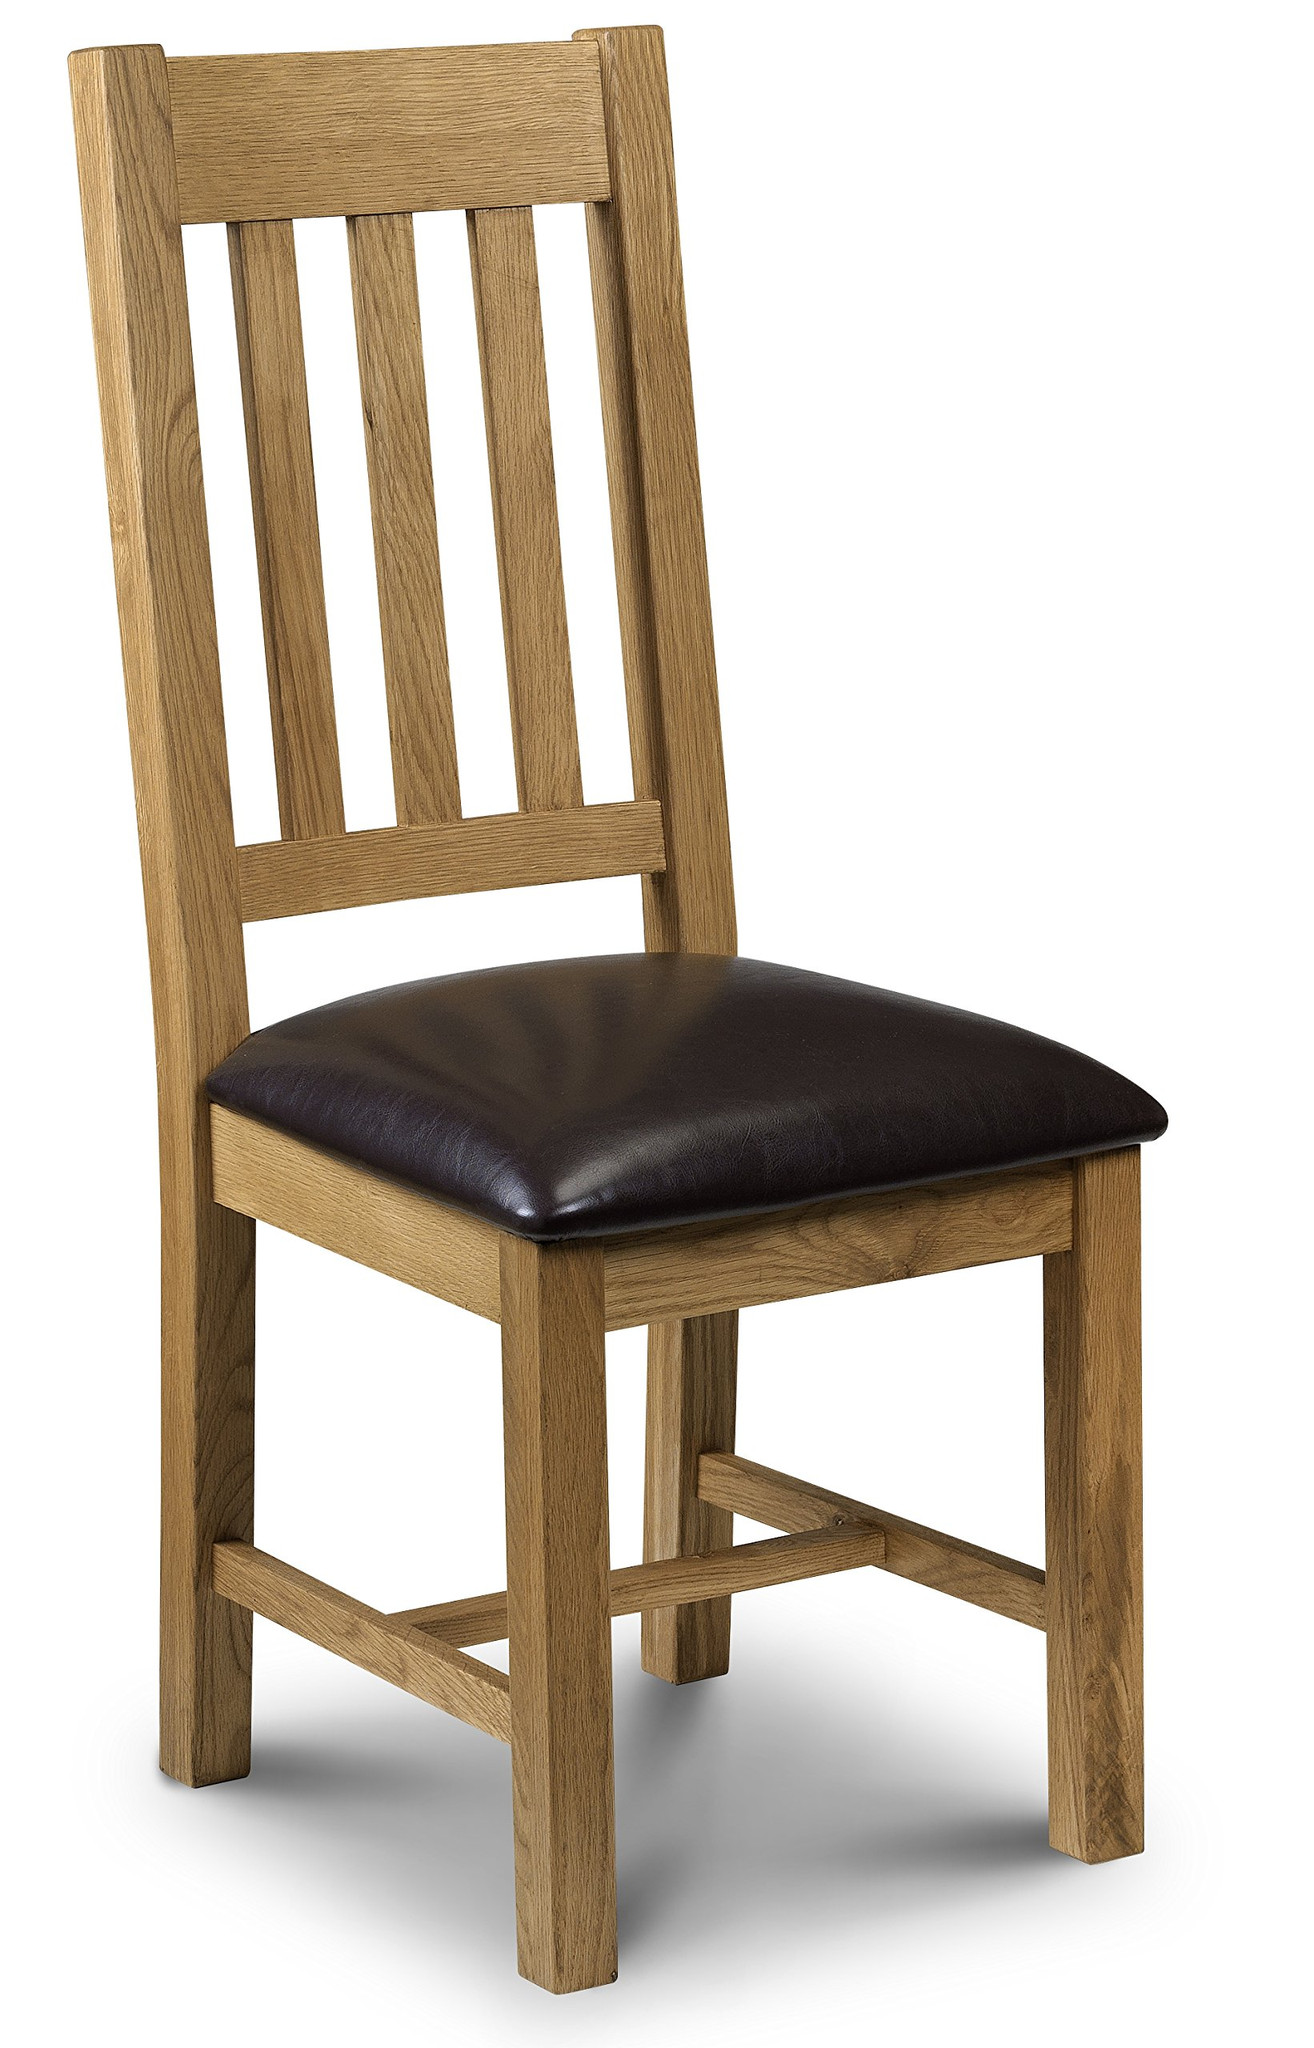 https://www.firstfurniture.co.uk/pub/media/catalog/product/8/1/81ihbjyiz7l.jpg